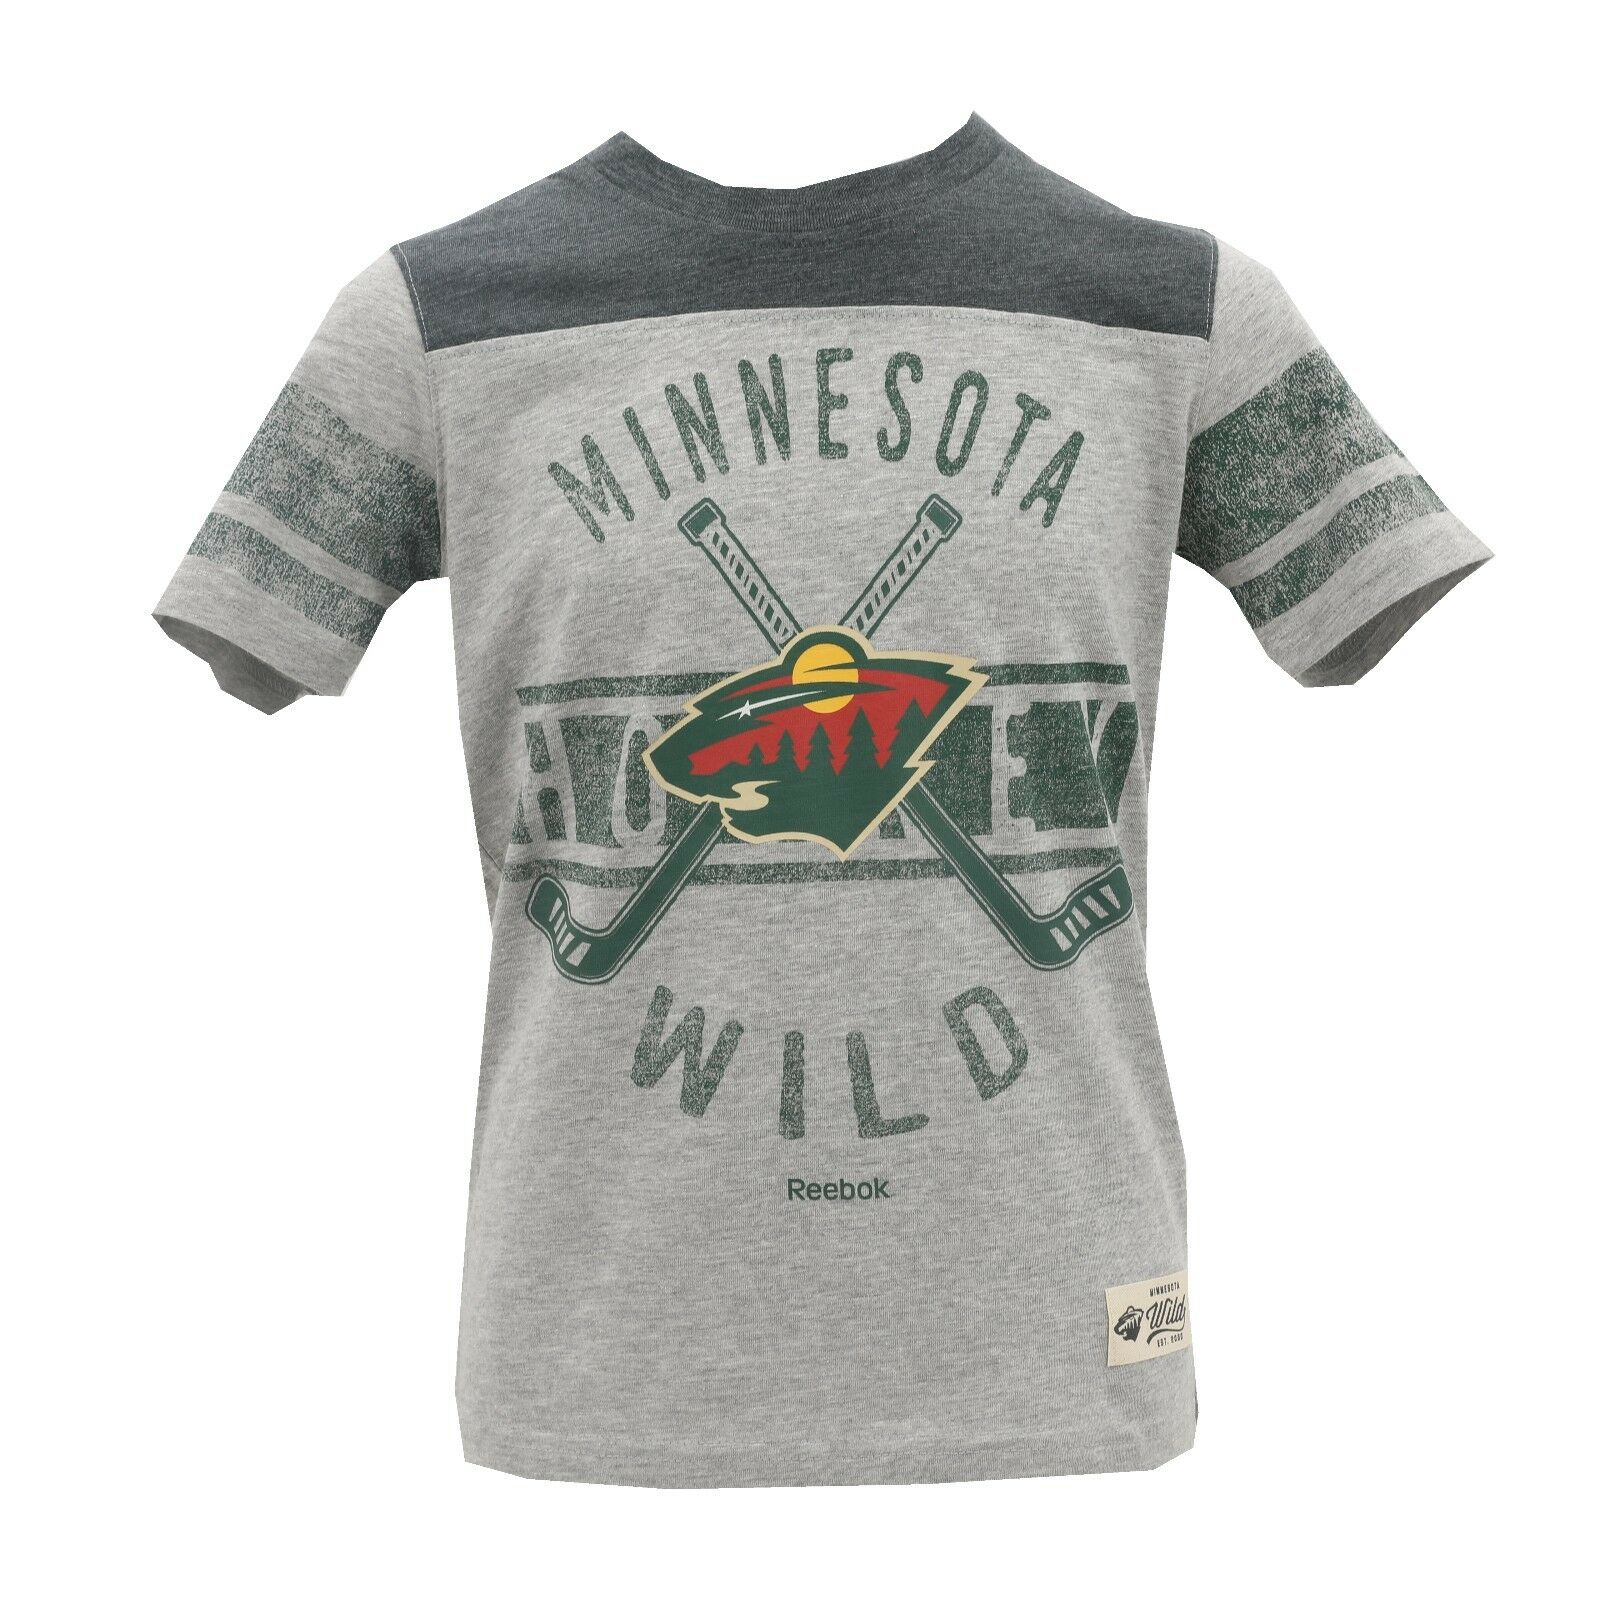 Minnesota Wild NHL Reebok Kids Youth Size Distressed T-Shirt New With Tags 3b1fe3e91